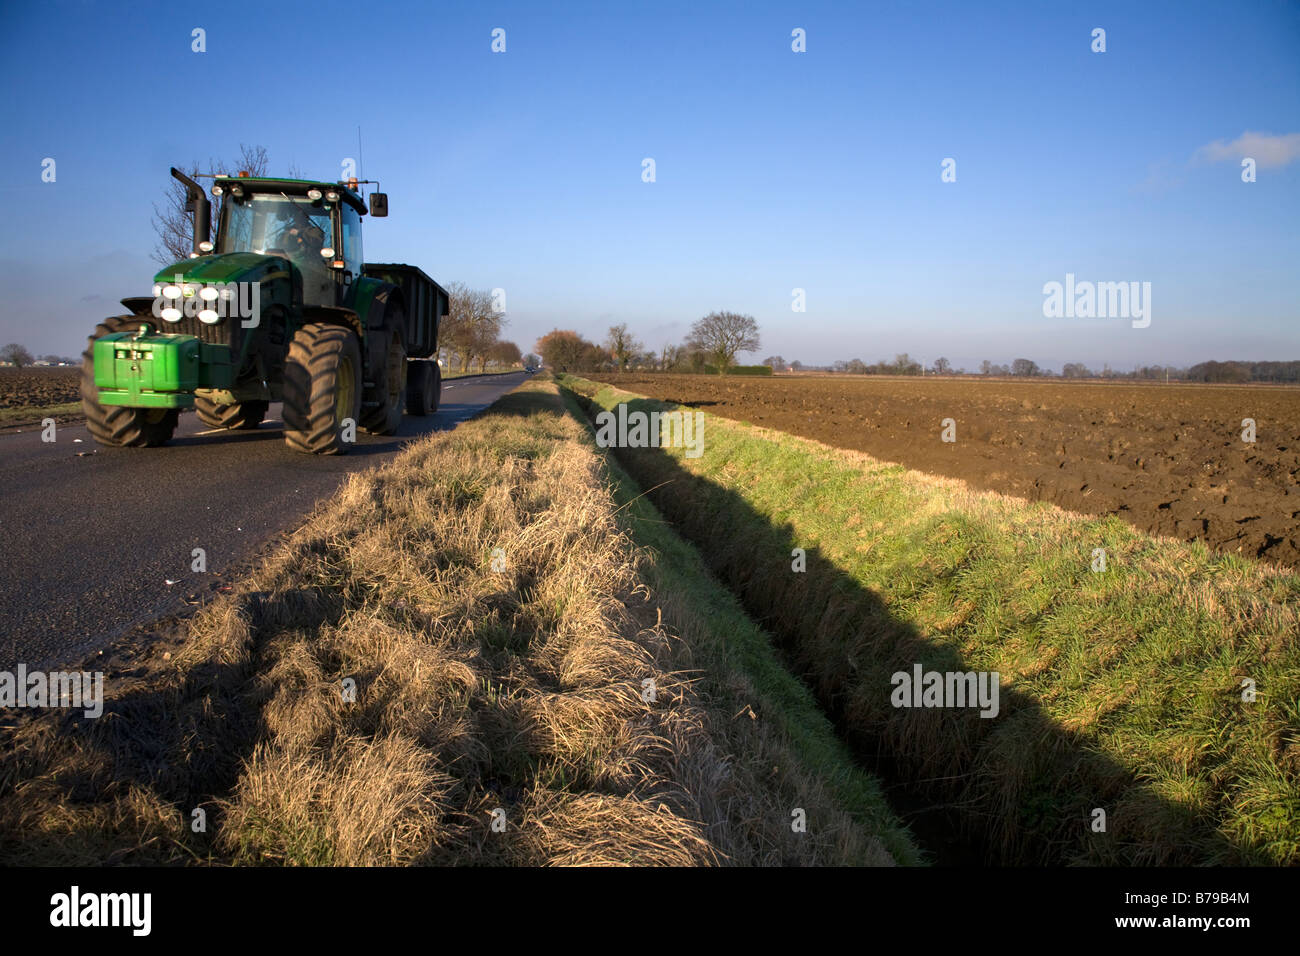 A TRACTOR DRIVES ALONG THE COUNTRY ROAD PAST PLOUGHED FIELDS IN THE WINTER IN ENGLAND UK Stock Photo